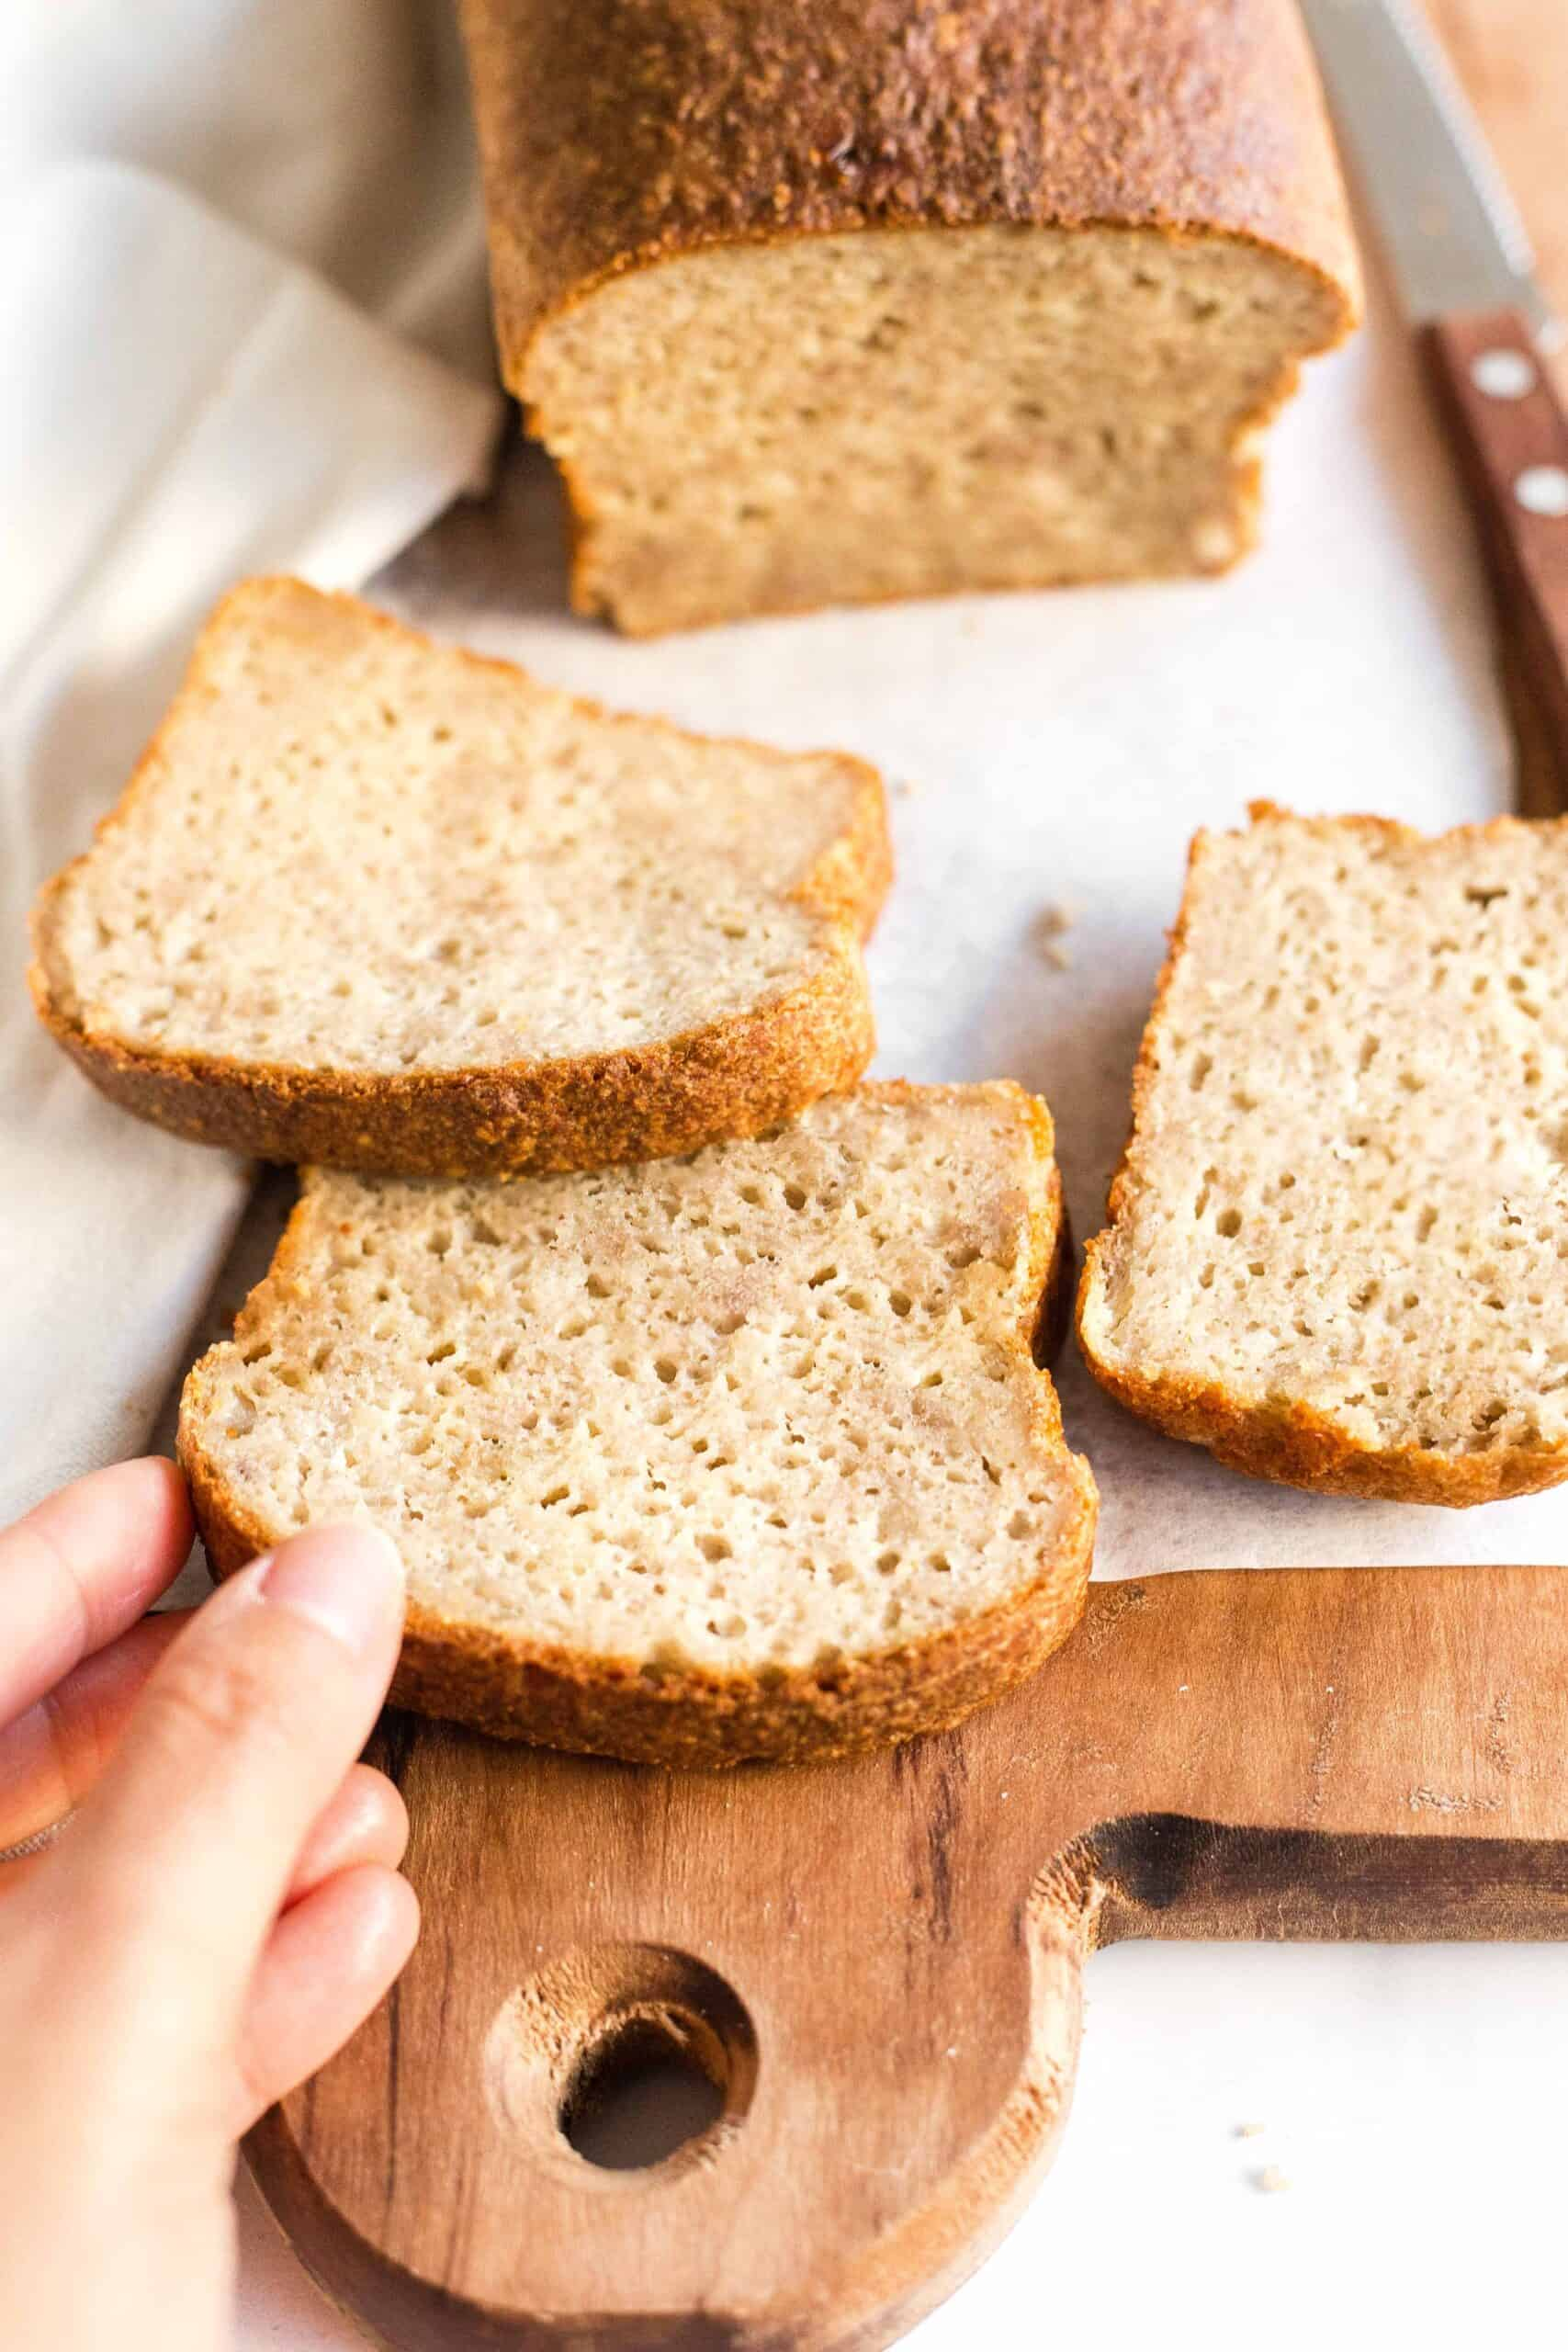 Reaching for a slice of yeast quinoa bread.